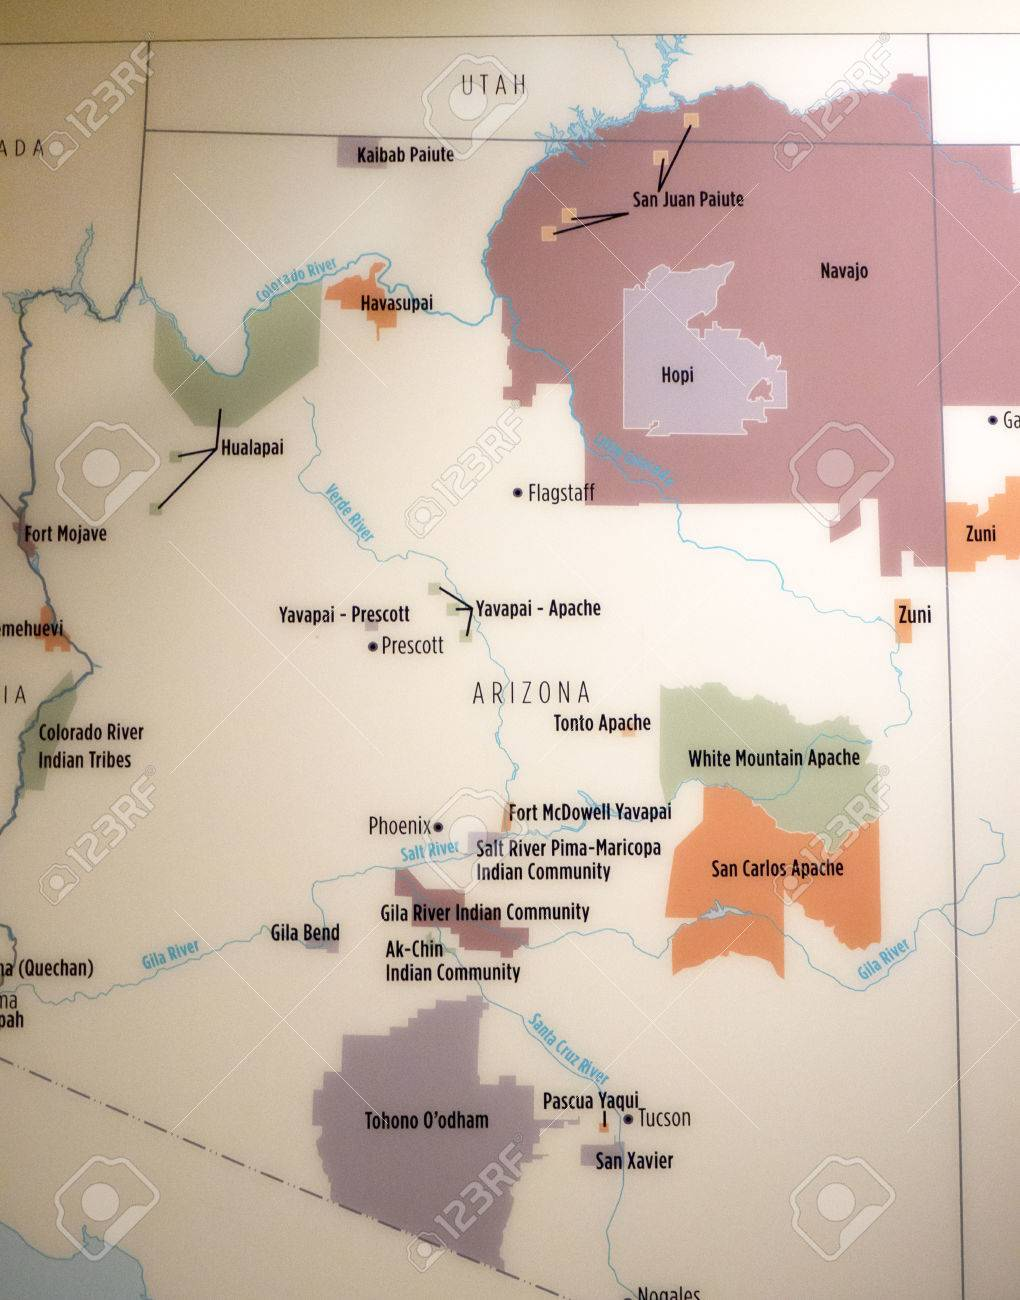 Map Showing The Native American Tribes In The South West Of The